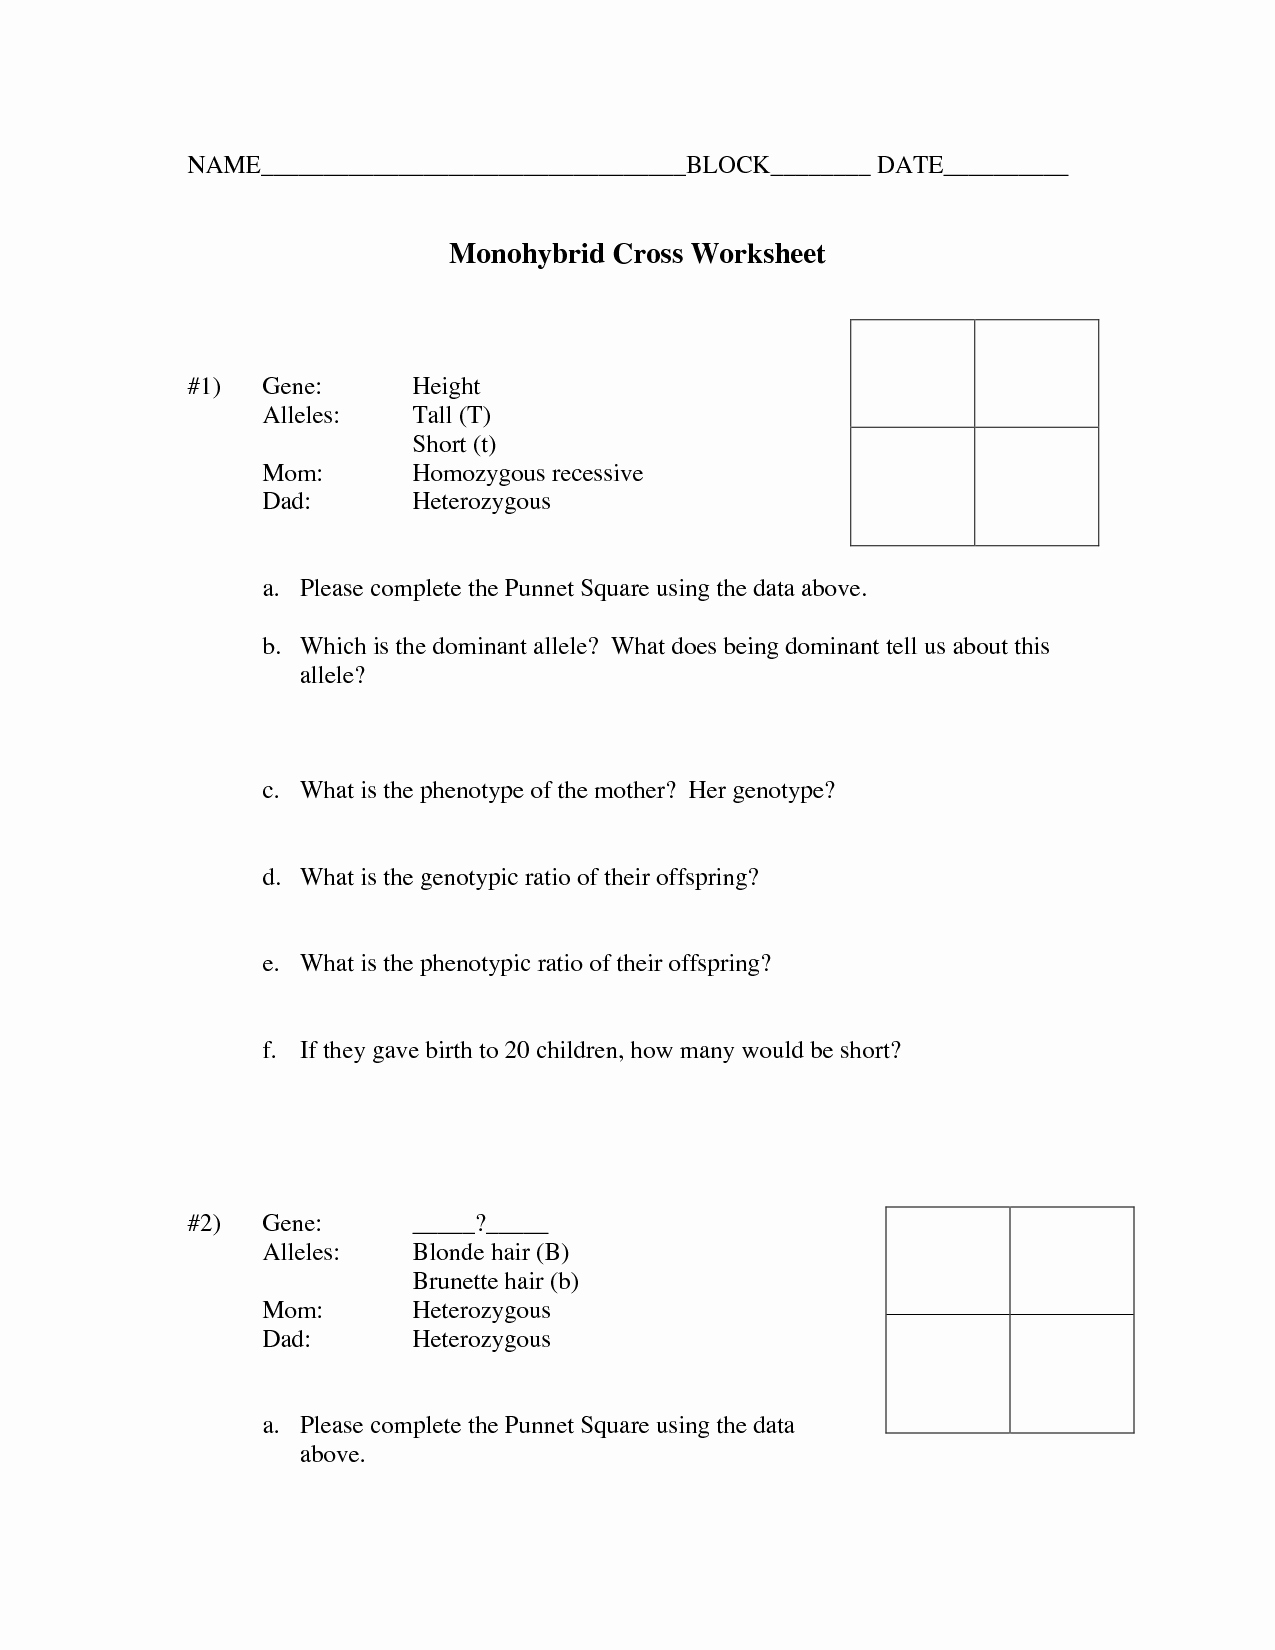 Monohybrid Cross Worksheet Answers Luxury Monohybrid Cross Worksheet Part D